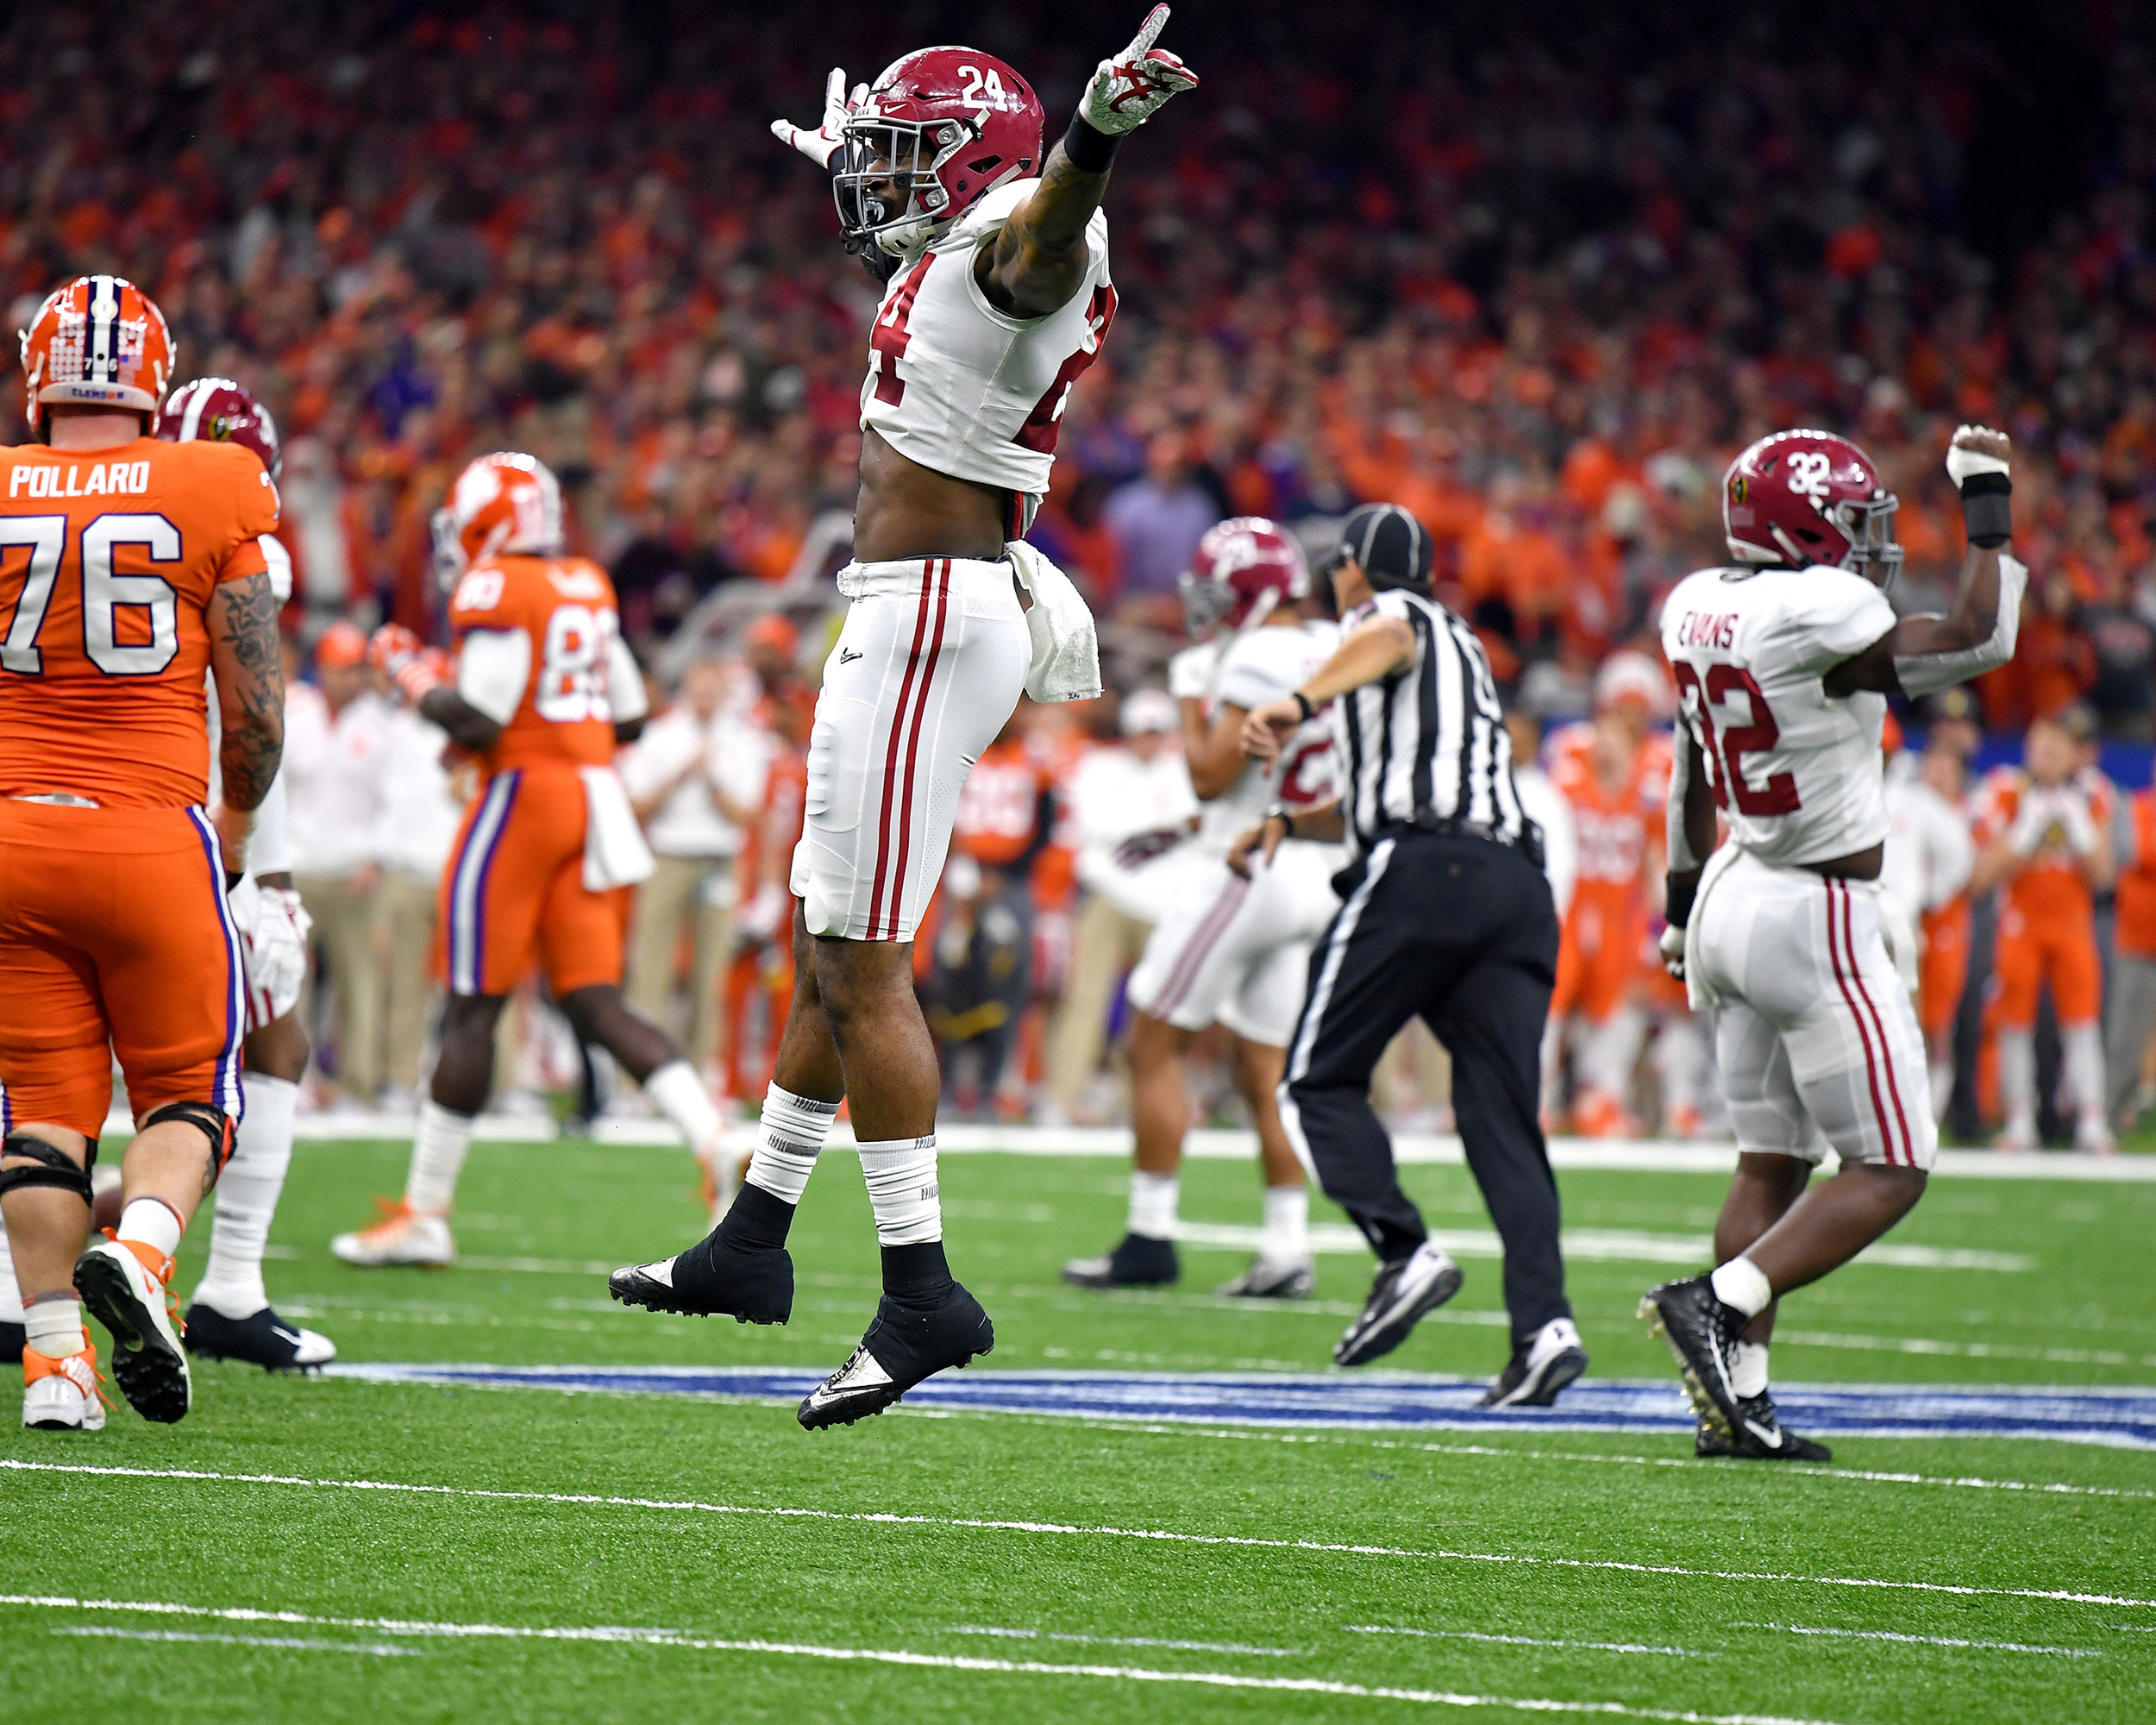 A defensive celebration in the first half of the 2018 AllState Sugar Bowl featuring the Clemson Tigers against the Alabama Crimson Tide on Jan. 1, 2018, at the Mercedes-Benz SuperDome in New Orleans, La. Alabama won the game 24-6. (Photo by Lee Walls)